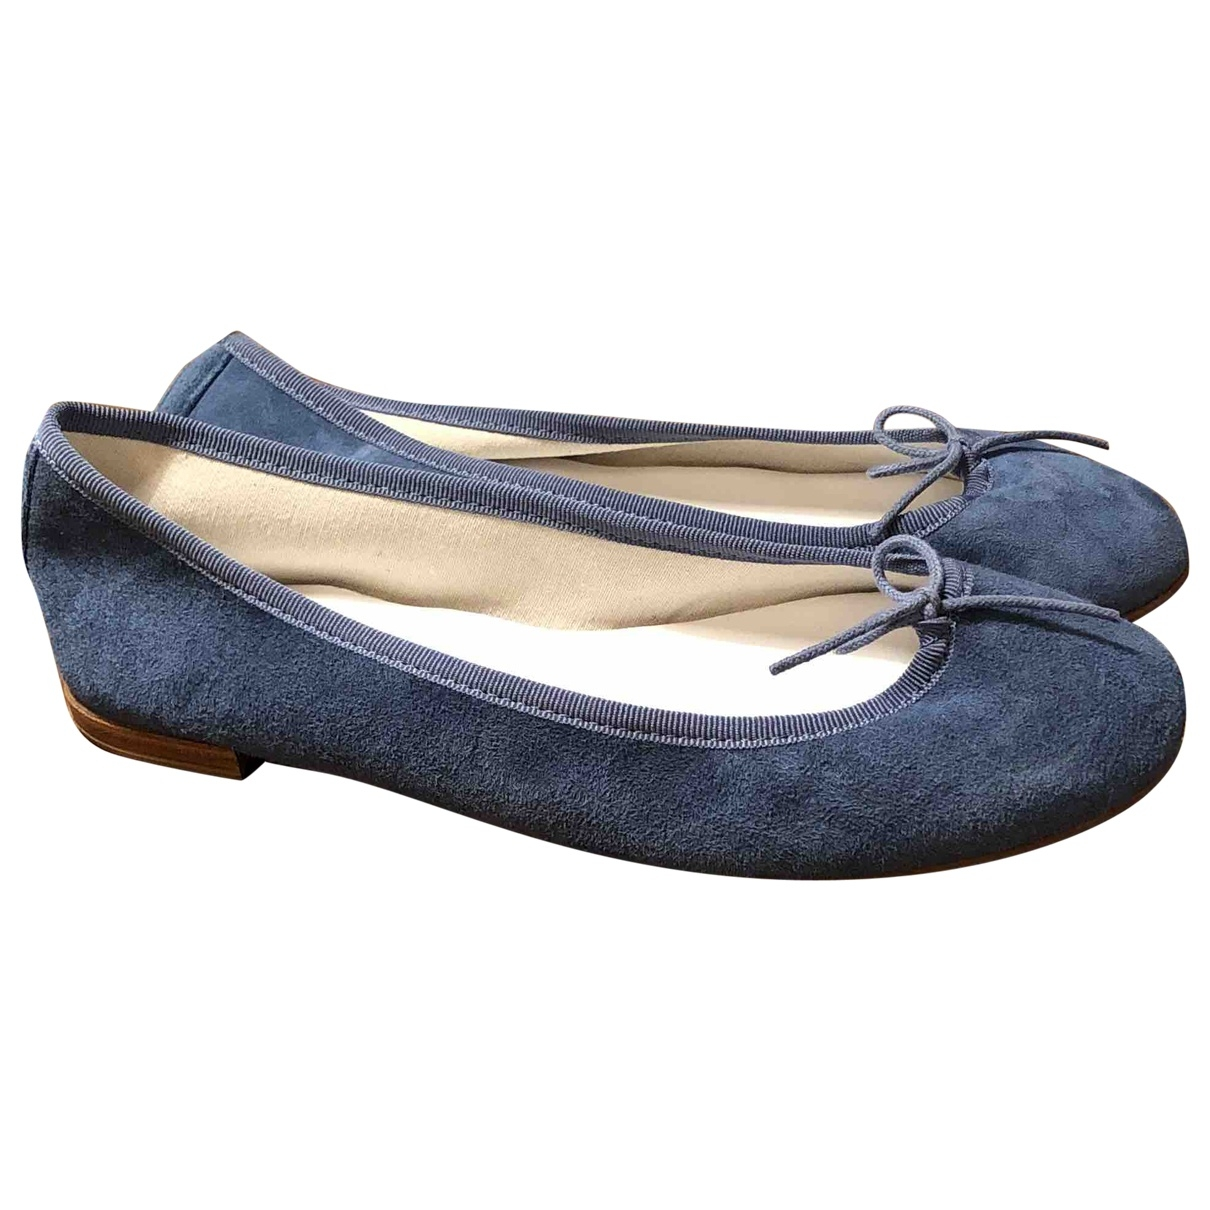 Repetto \N Blue Suede Ballet flats for Women 38.5 EU